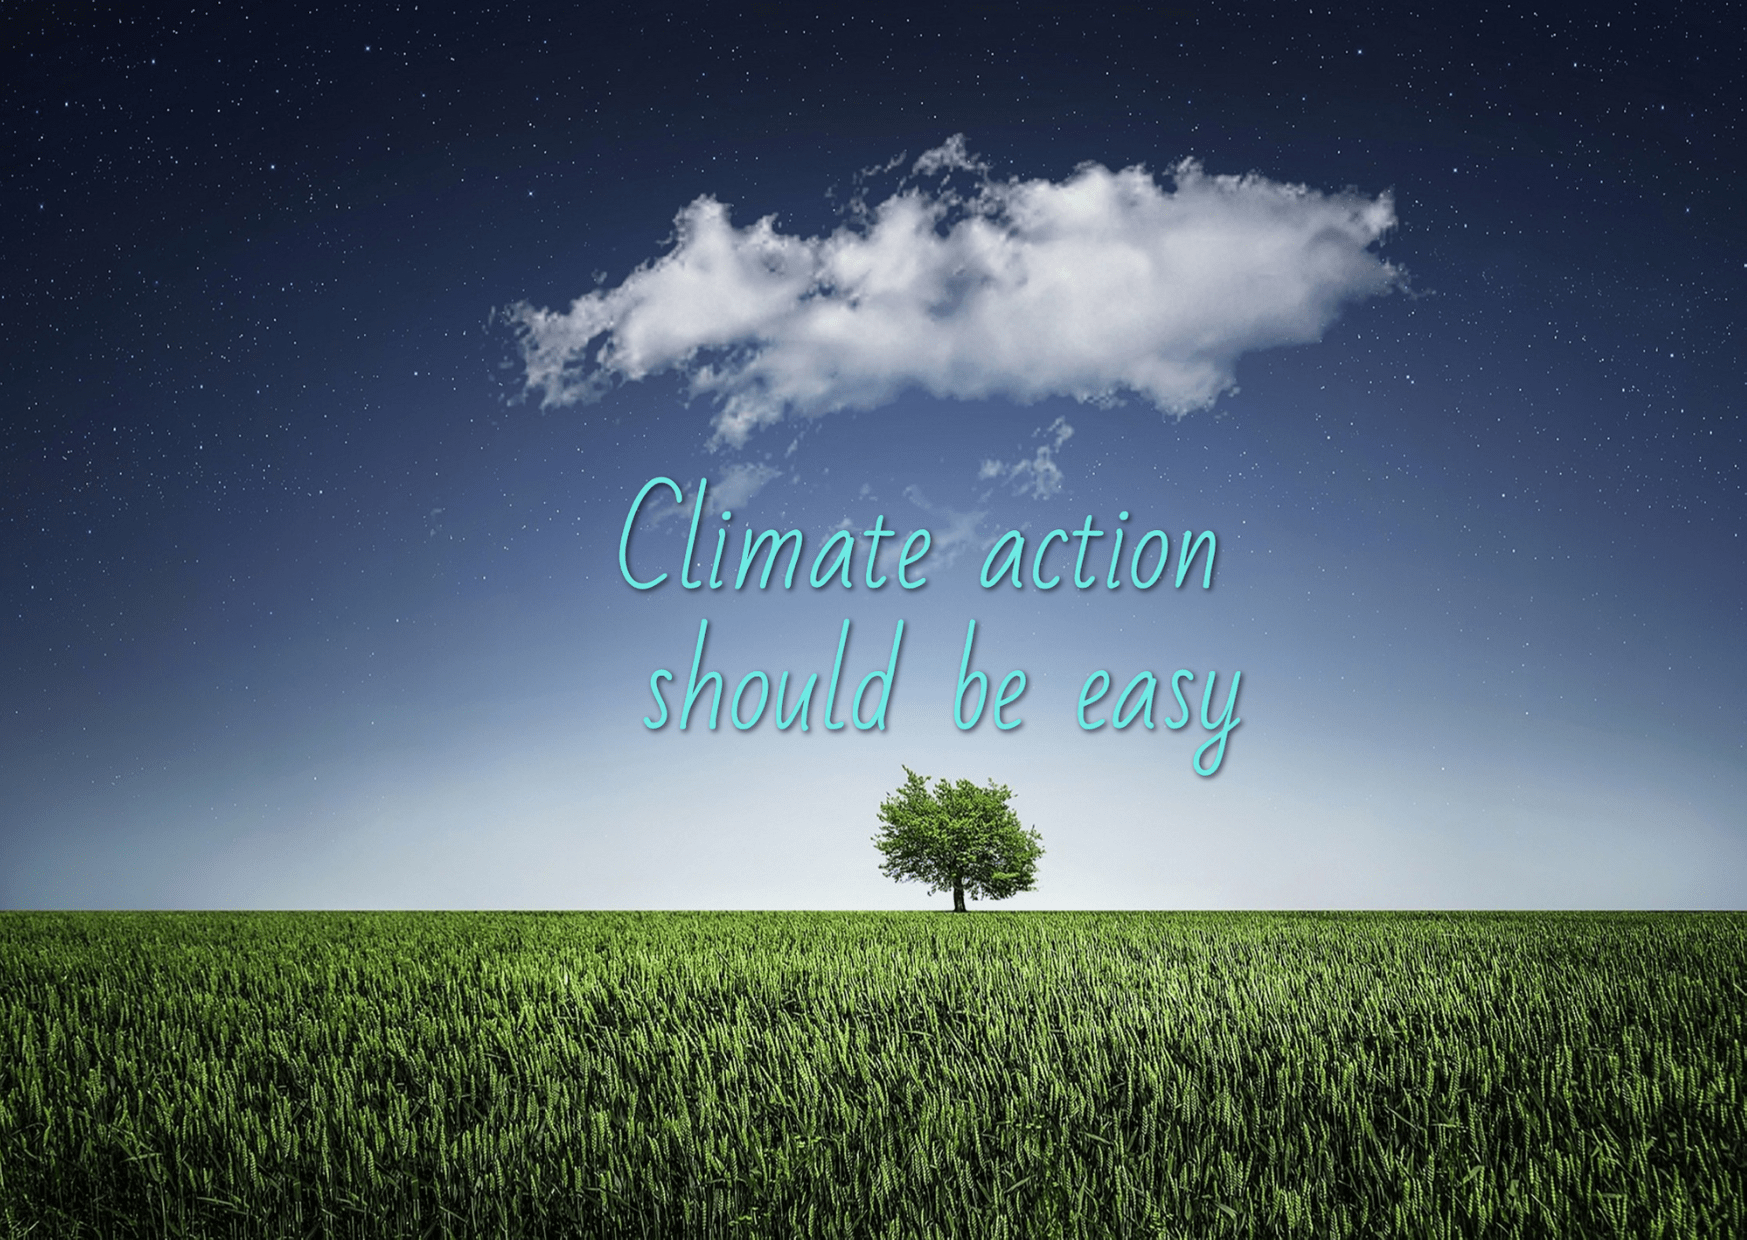 Climate Action should be easy